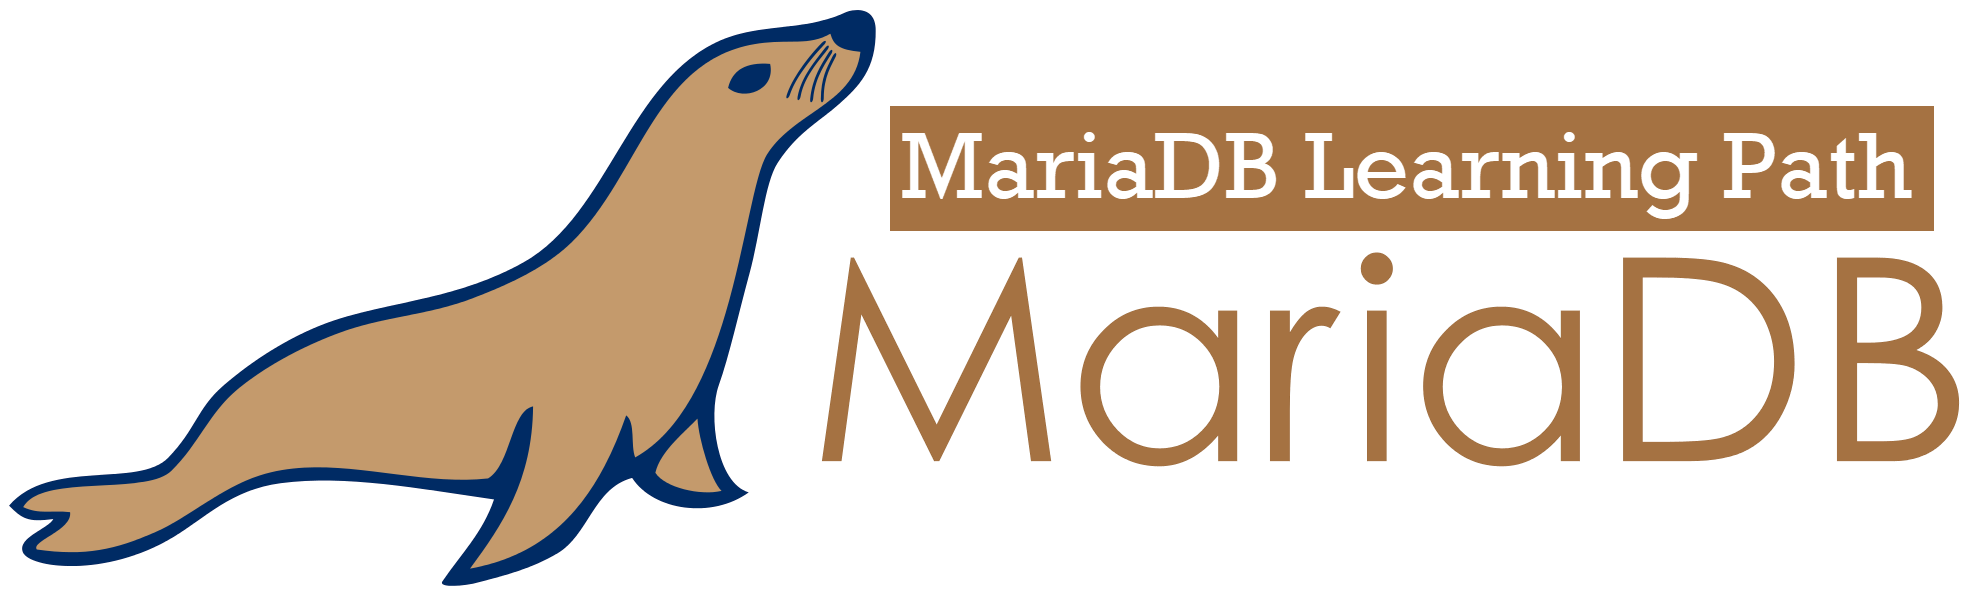 MariaDB Learning Path